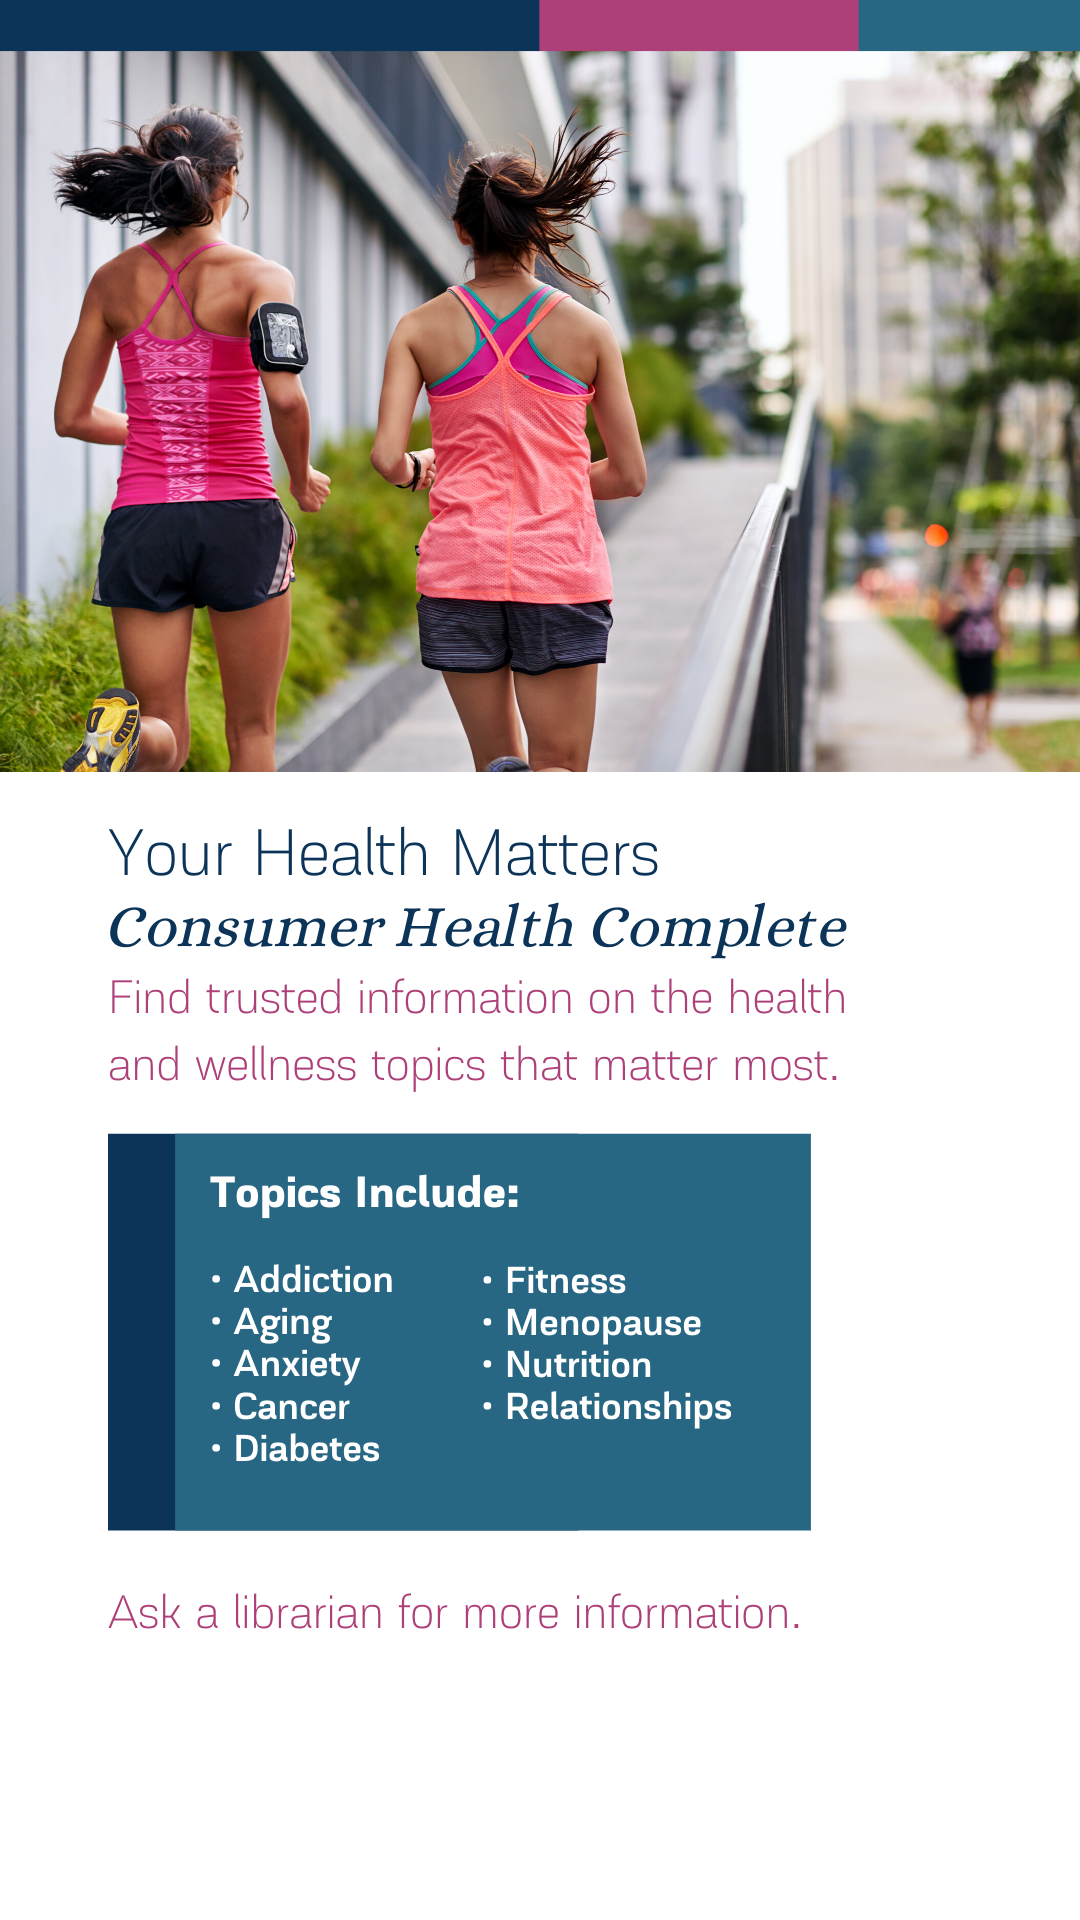 Image promoting Concumer Health Complete for Instagram Stories